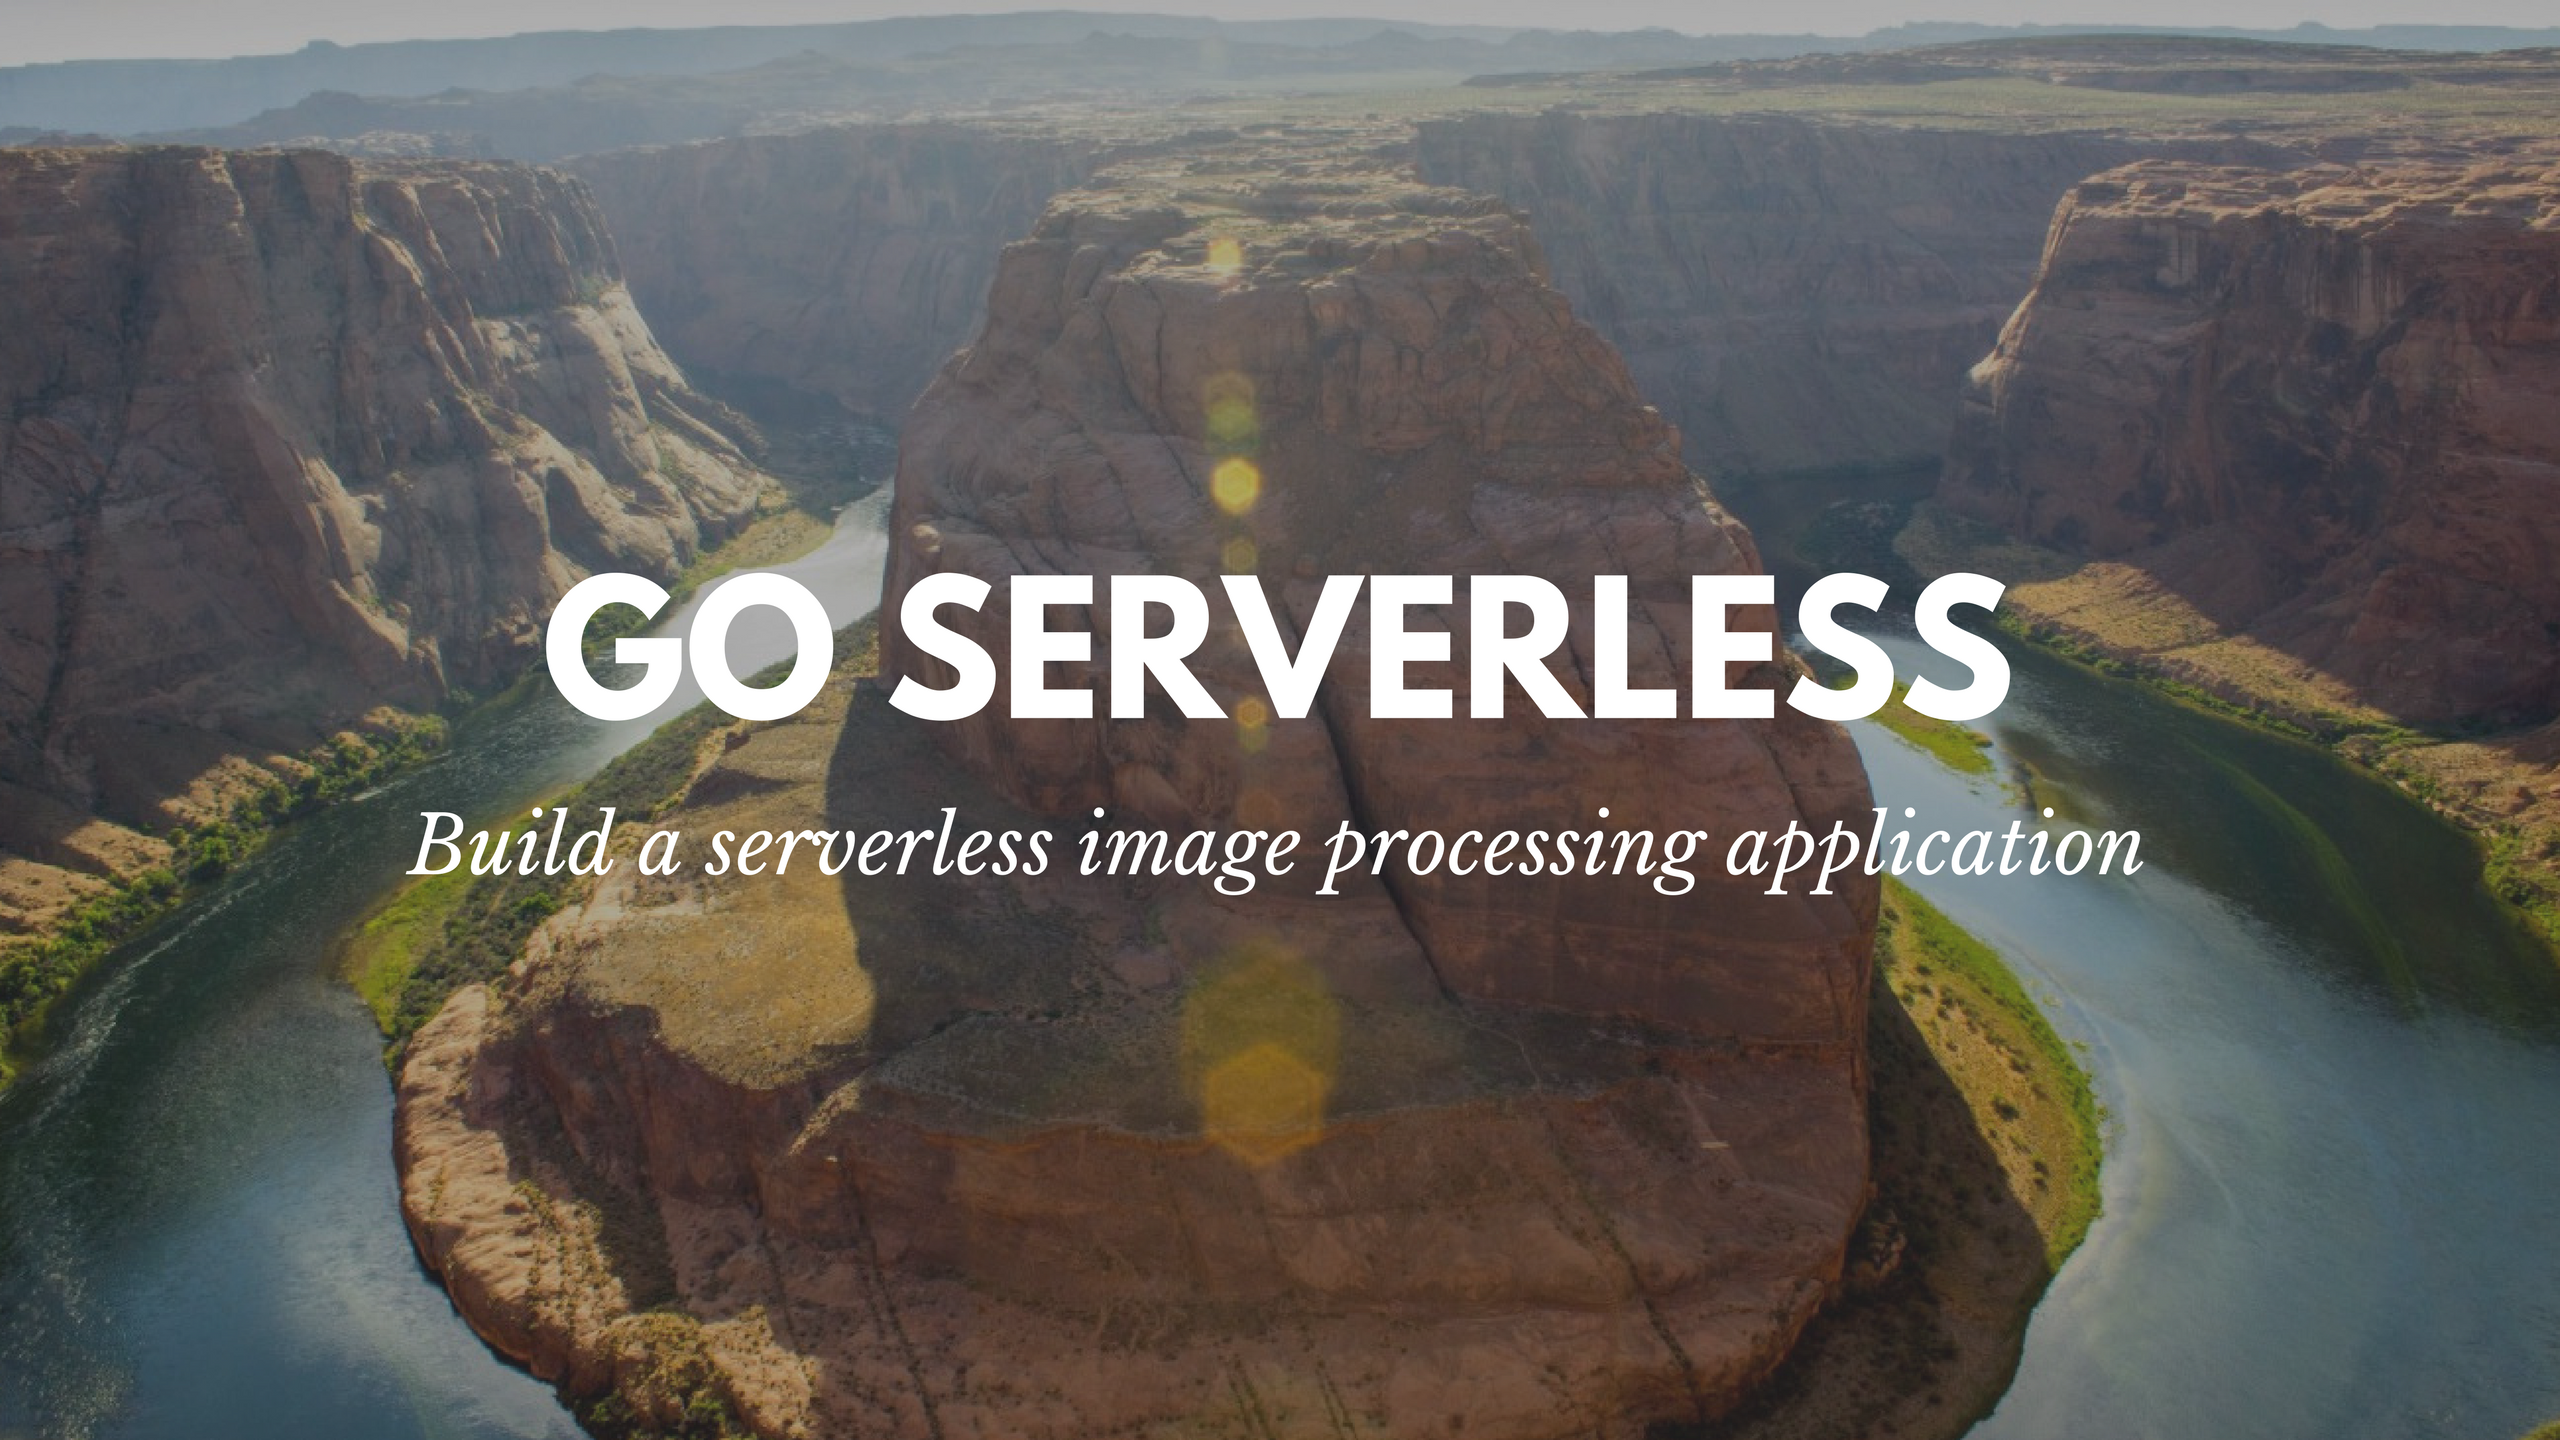 How to build a serverless app for on-demand image processing